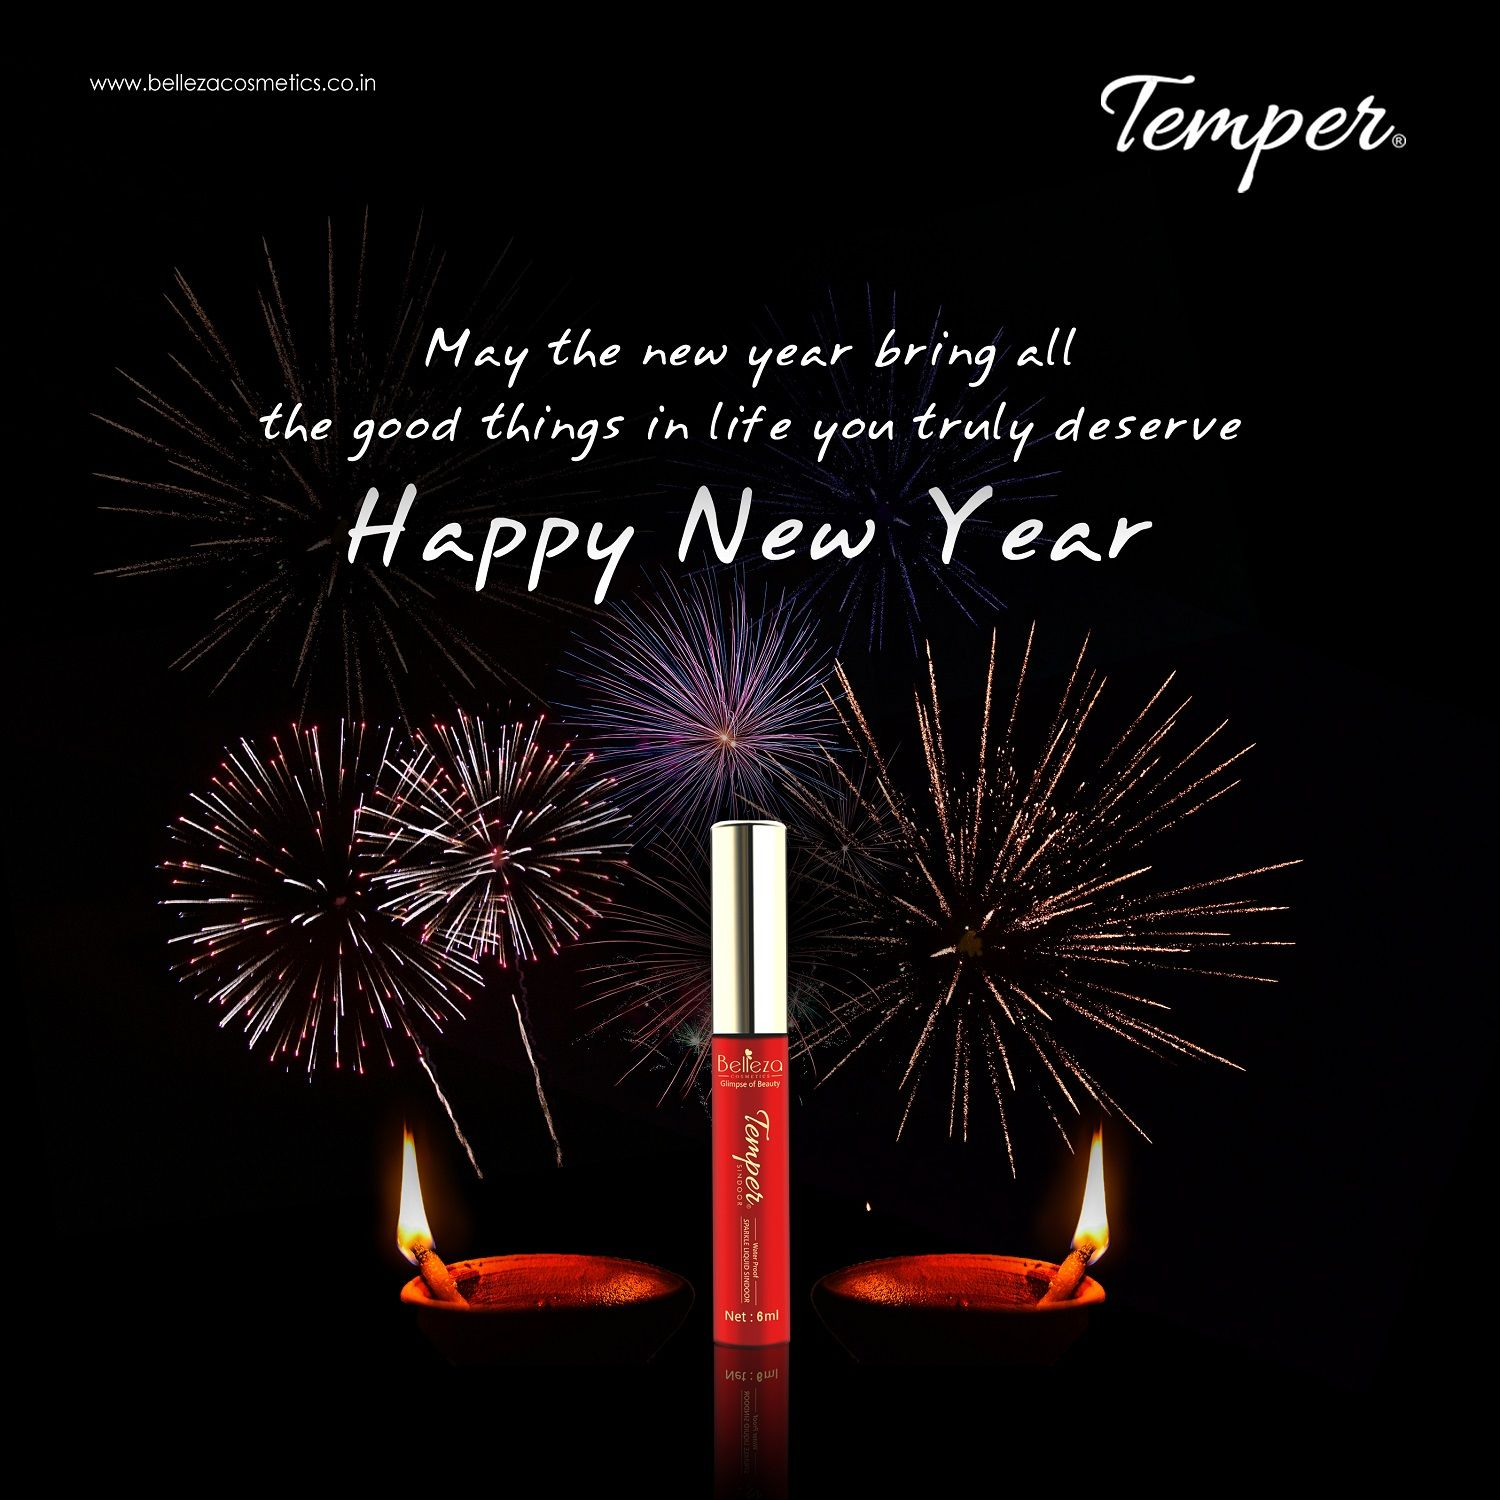 May the new year bring all the good things in life you